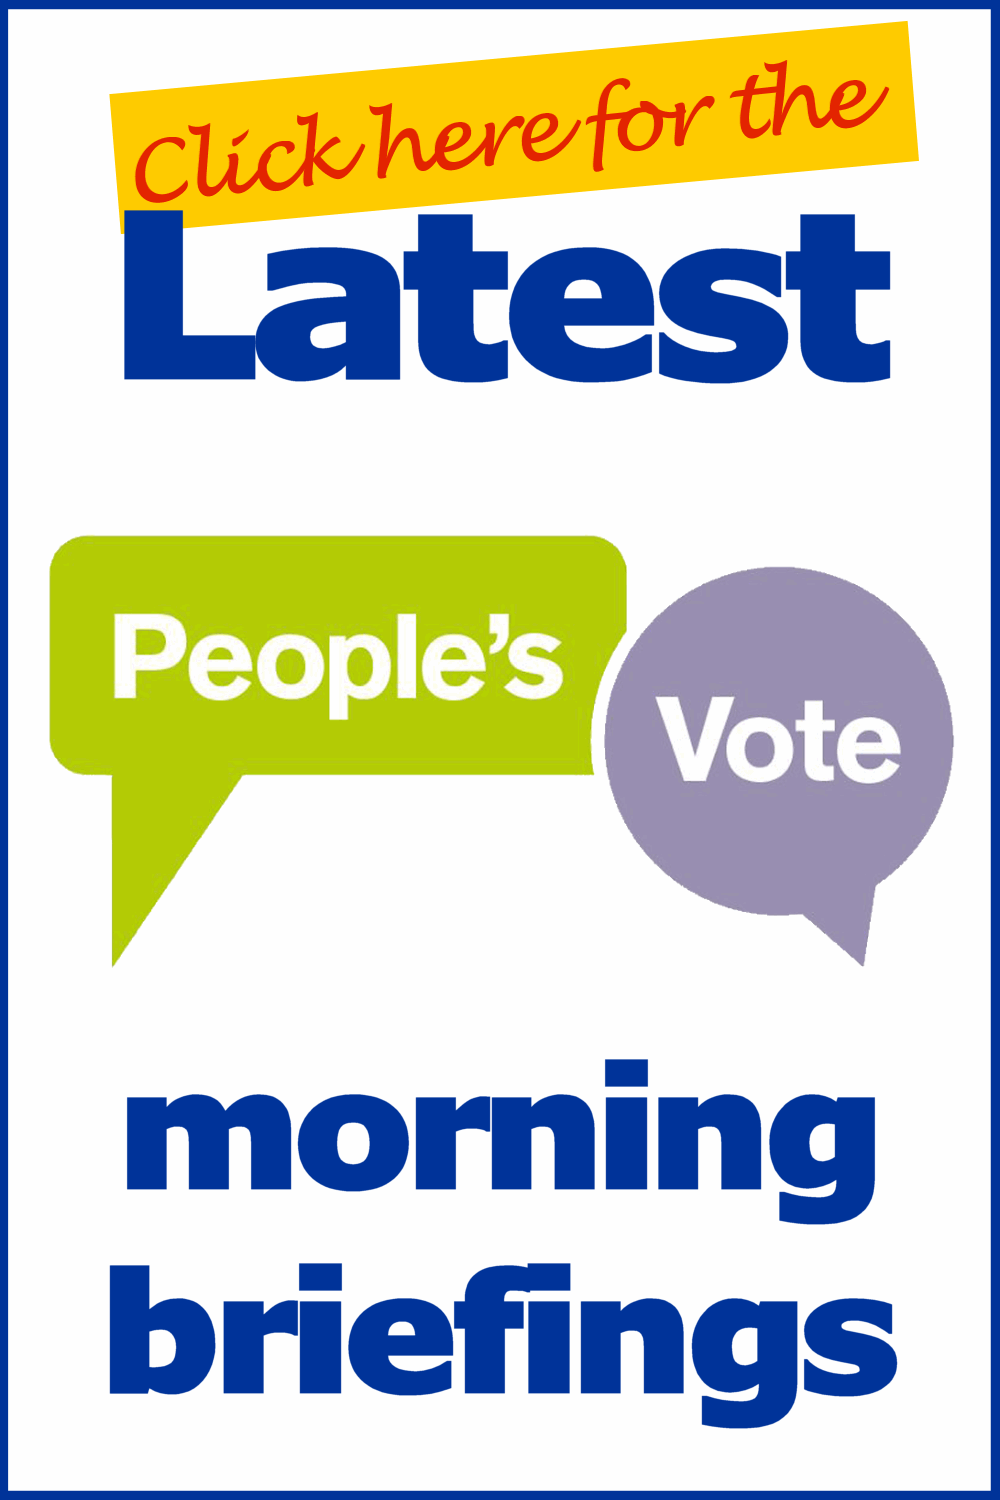 People's Vote morning briefings